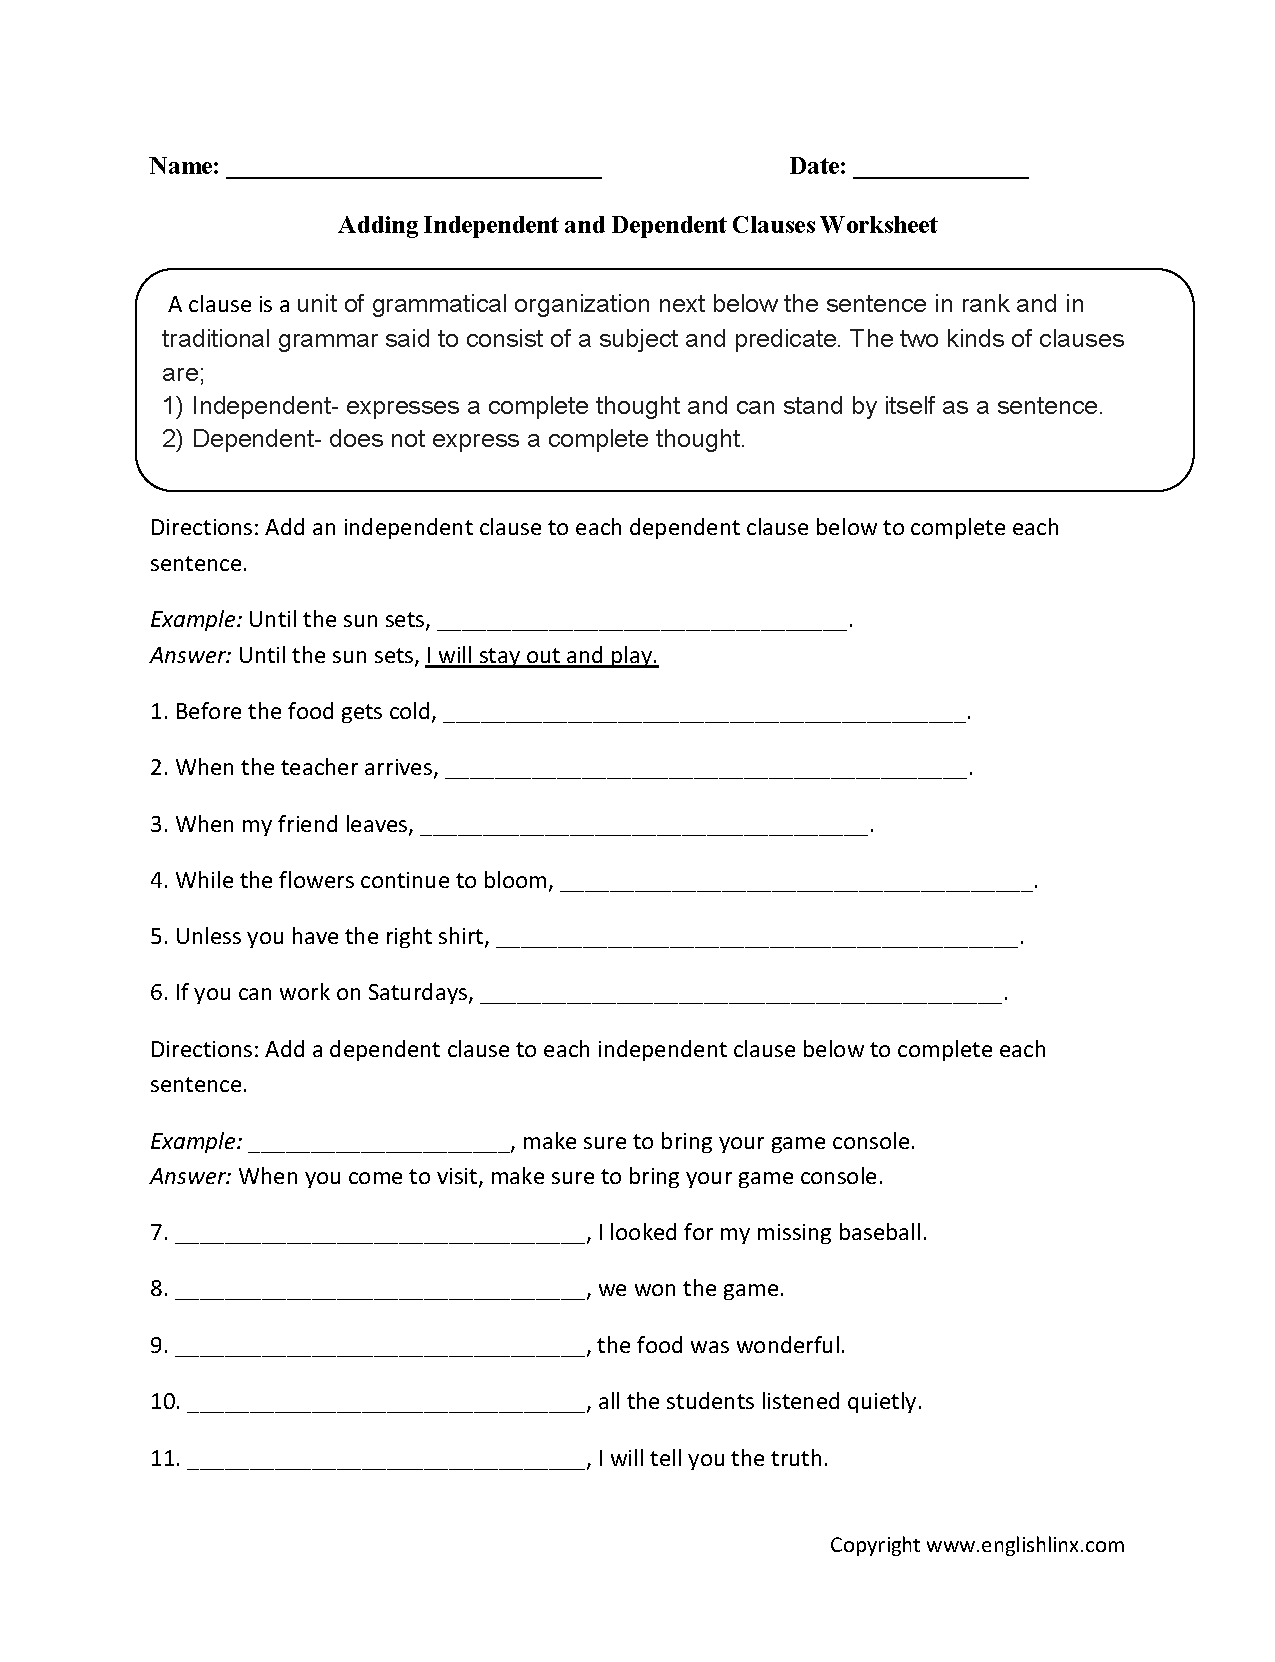 worksheet Clauses And Phrases Worksheets adding dependent and independent clauses worksheet vocabulary worksheet